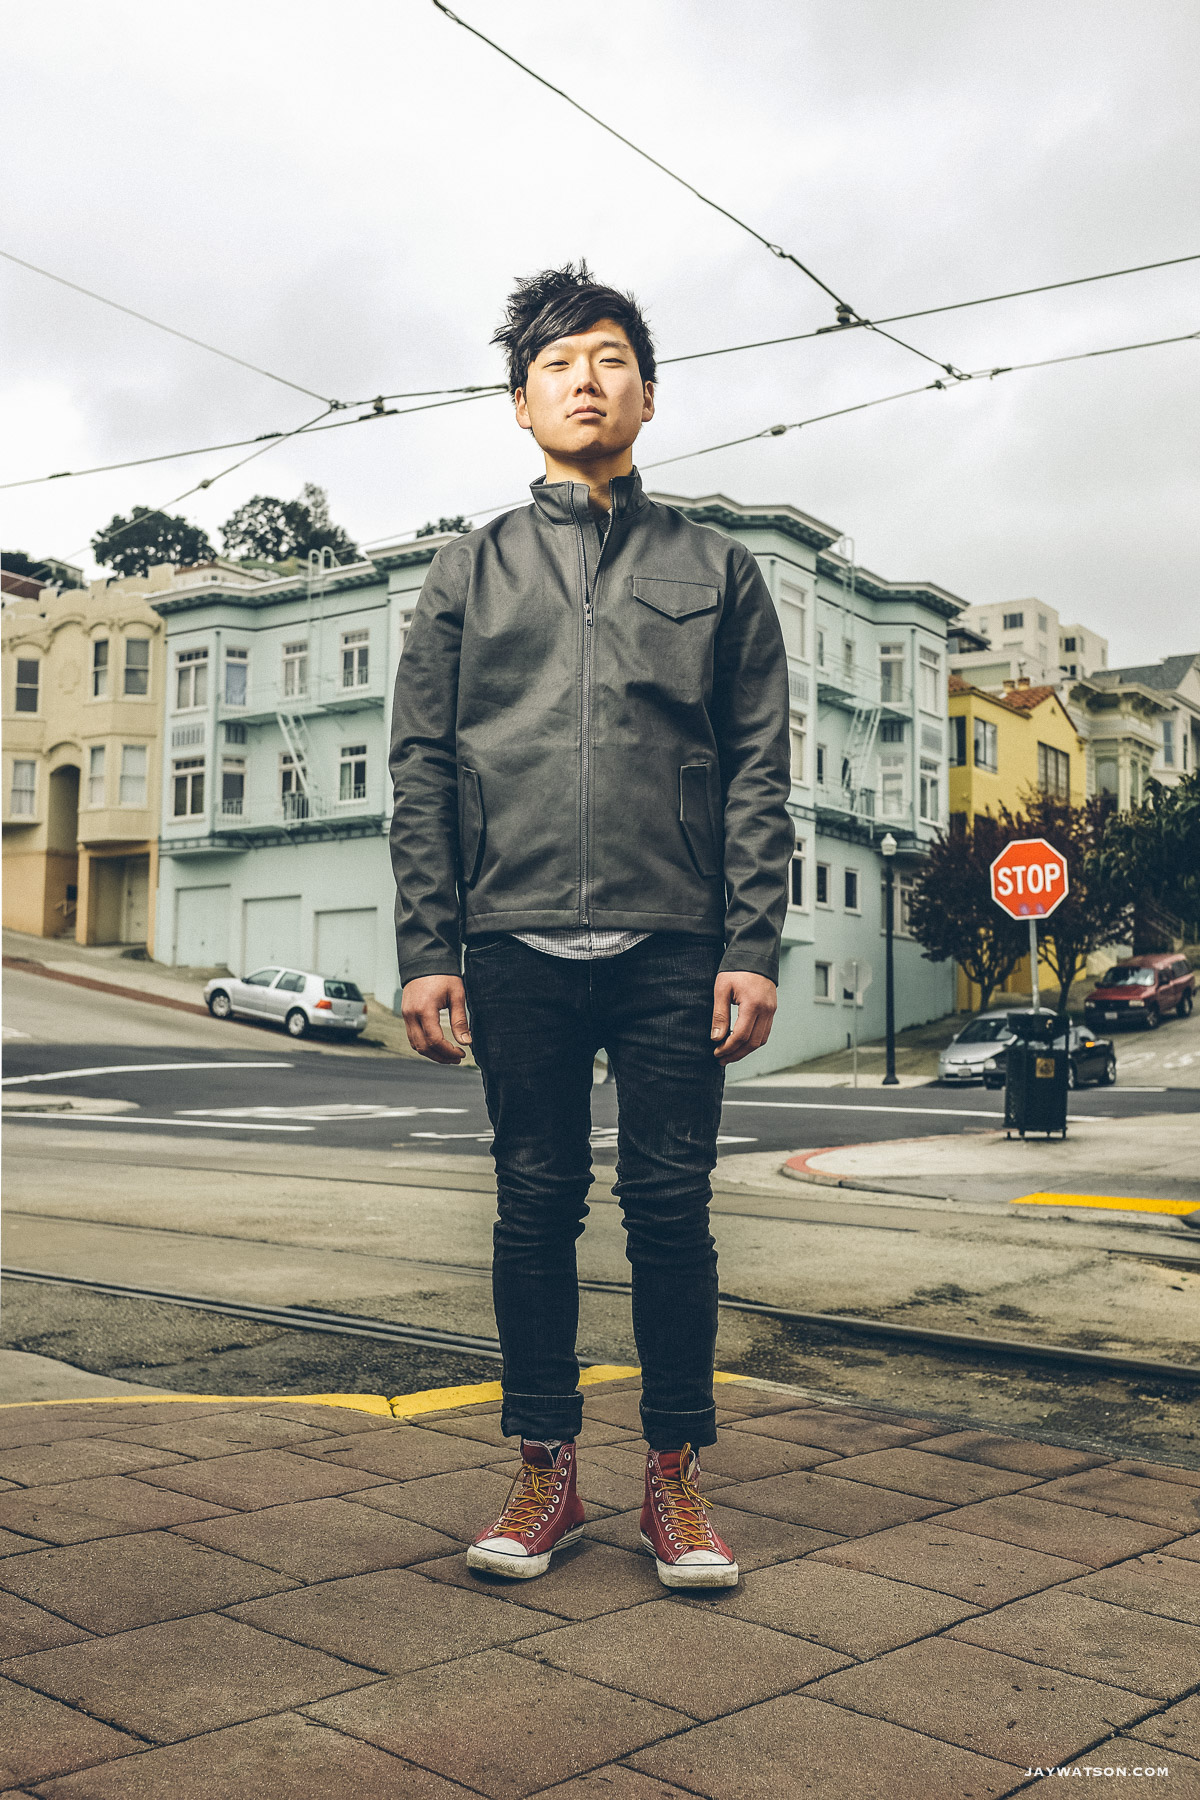 Socksmith | Footwear Catalog Shoot in San Francisco